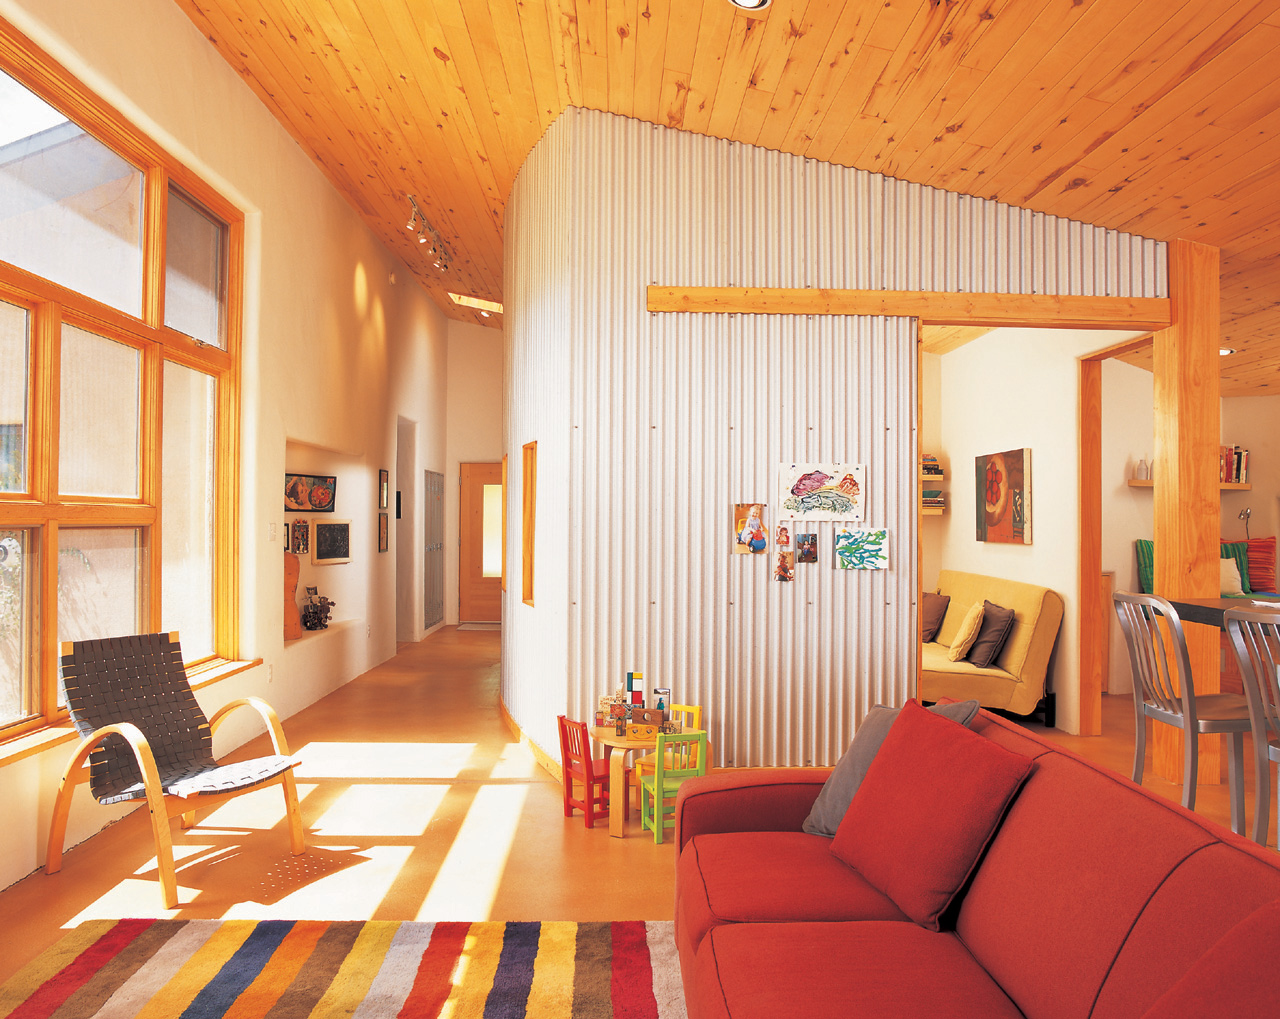 How to dress your home january 2011 - Using corrugated metal for interior walls ...